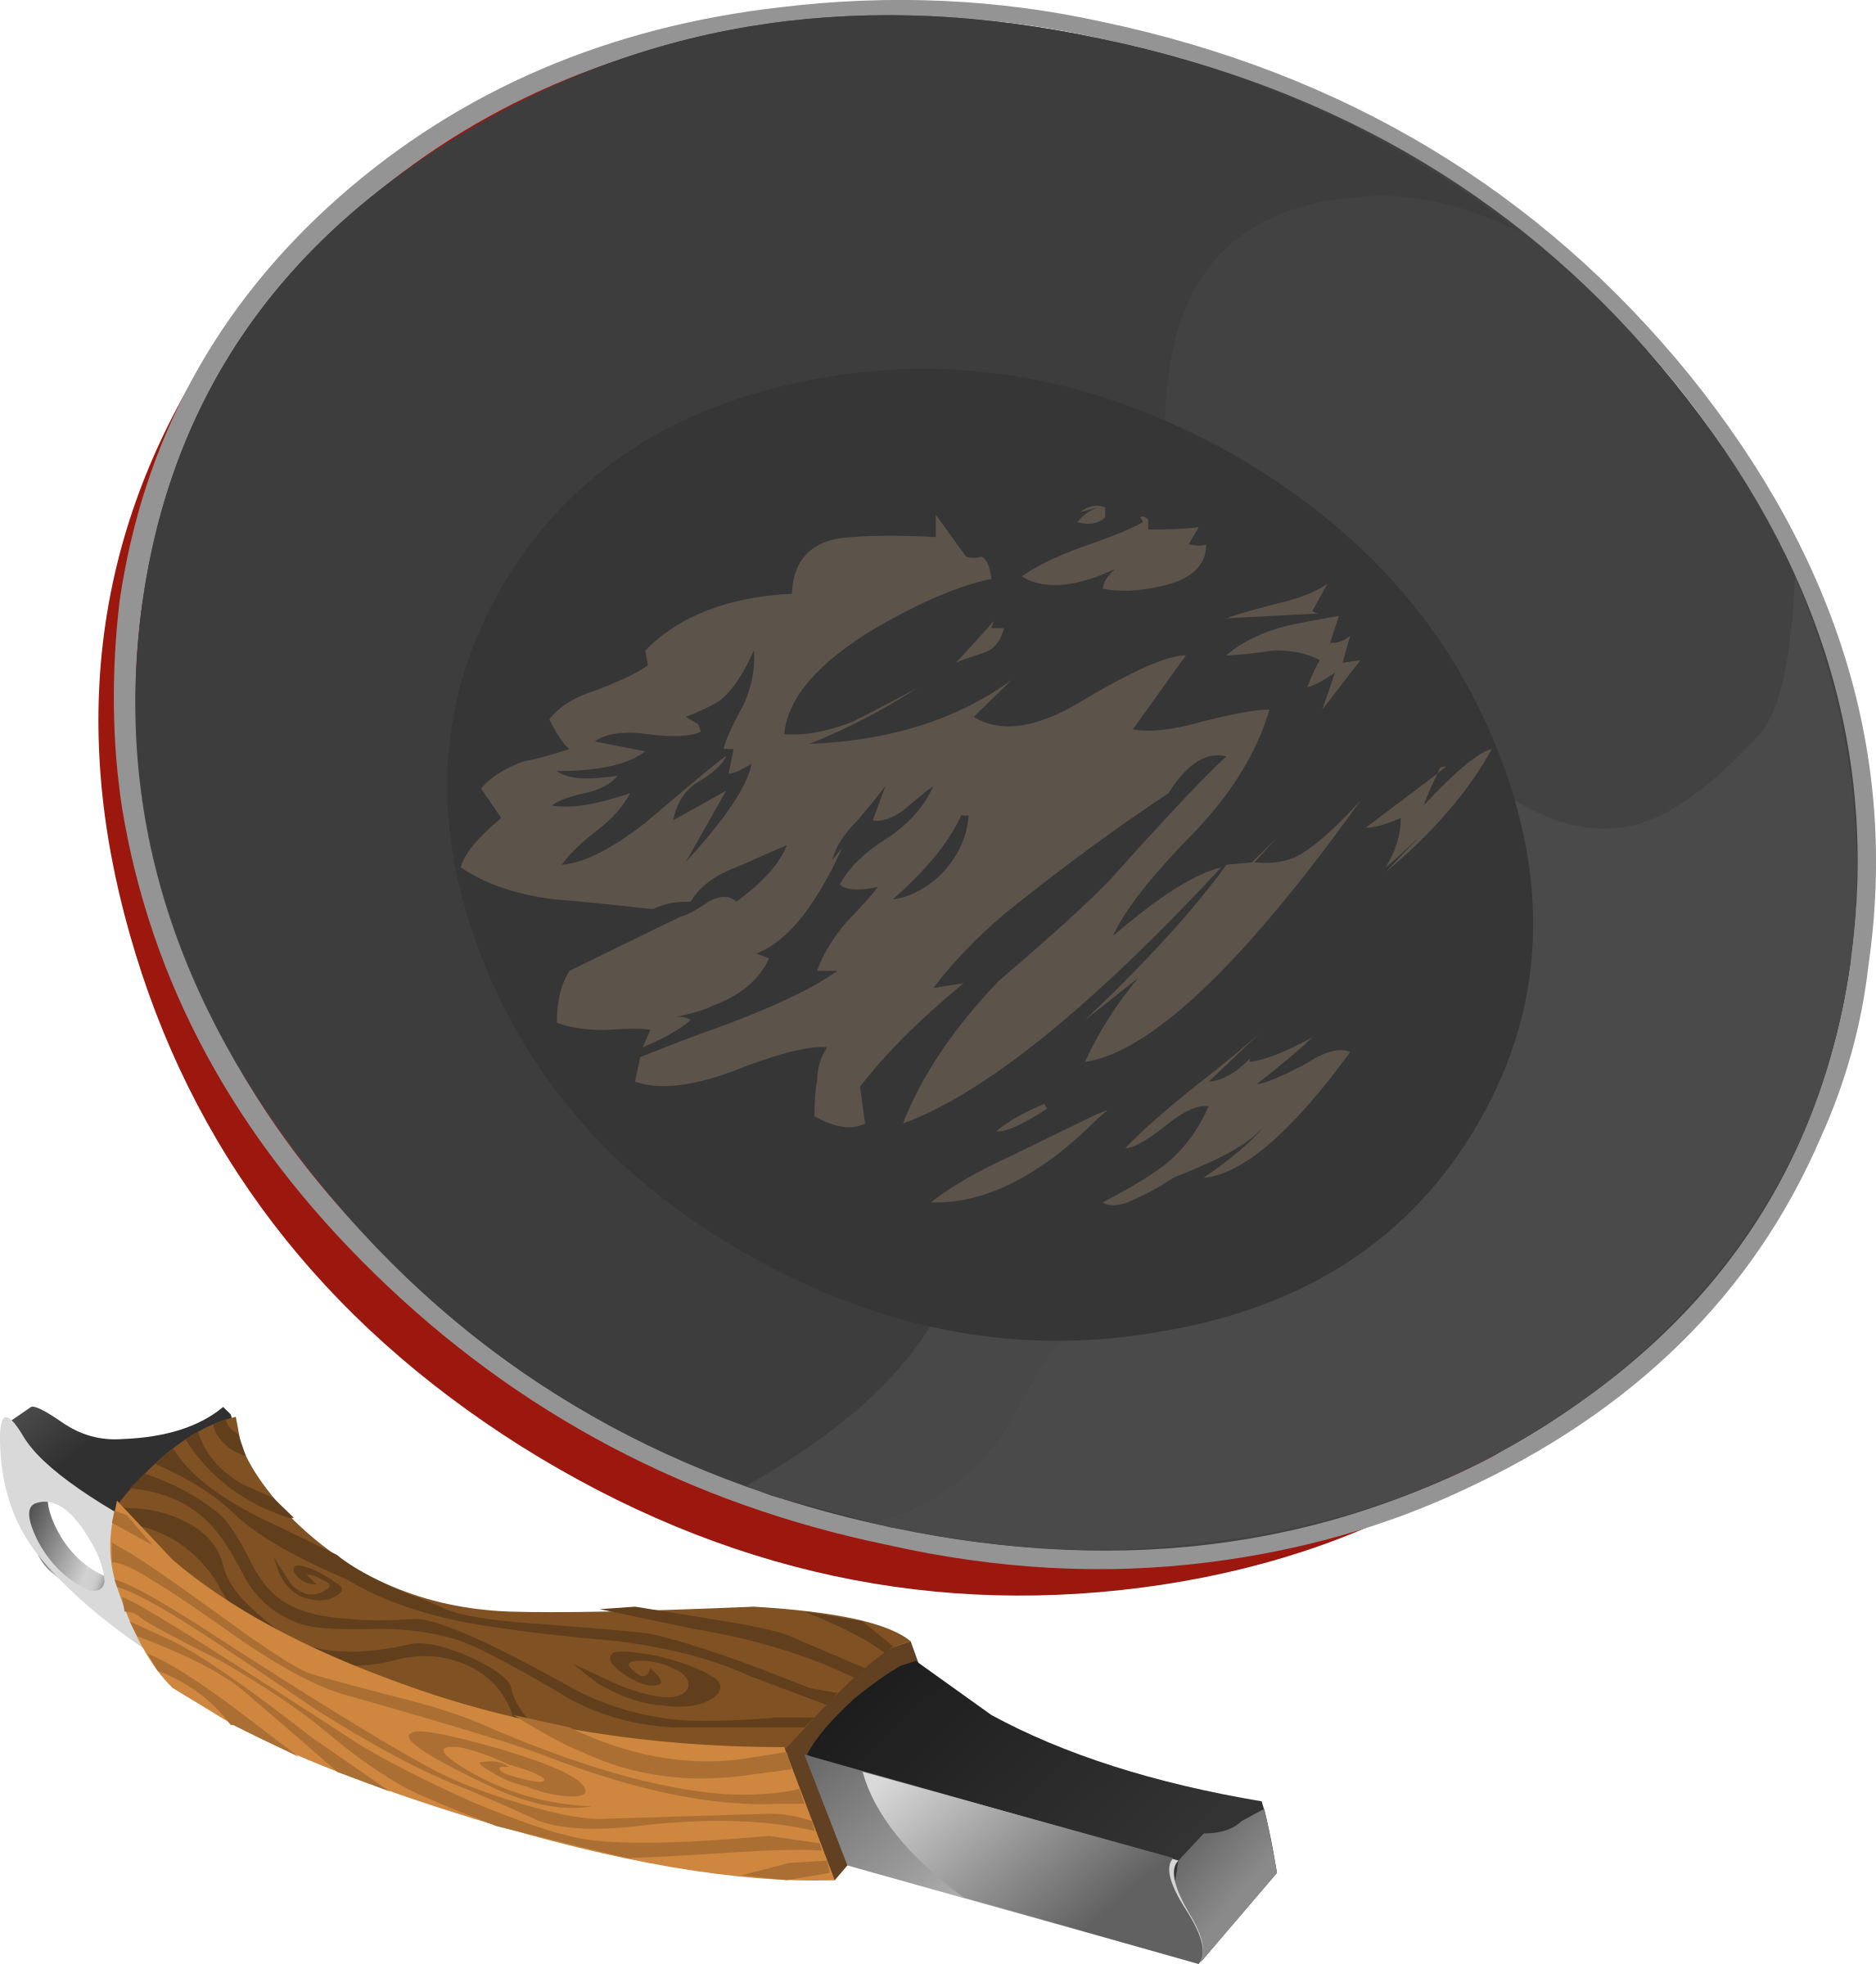 Tools Frying Pan by glitch